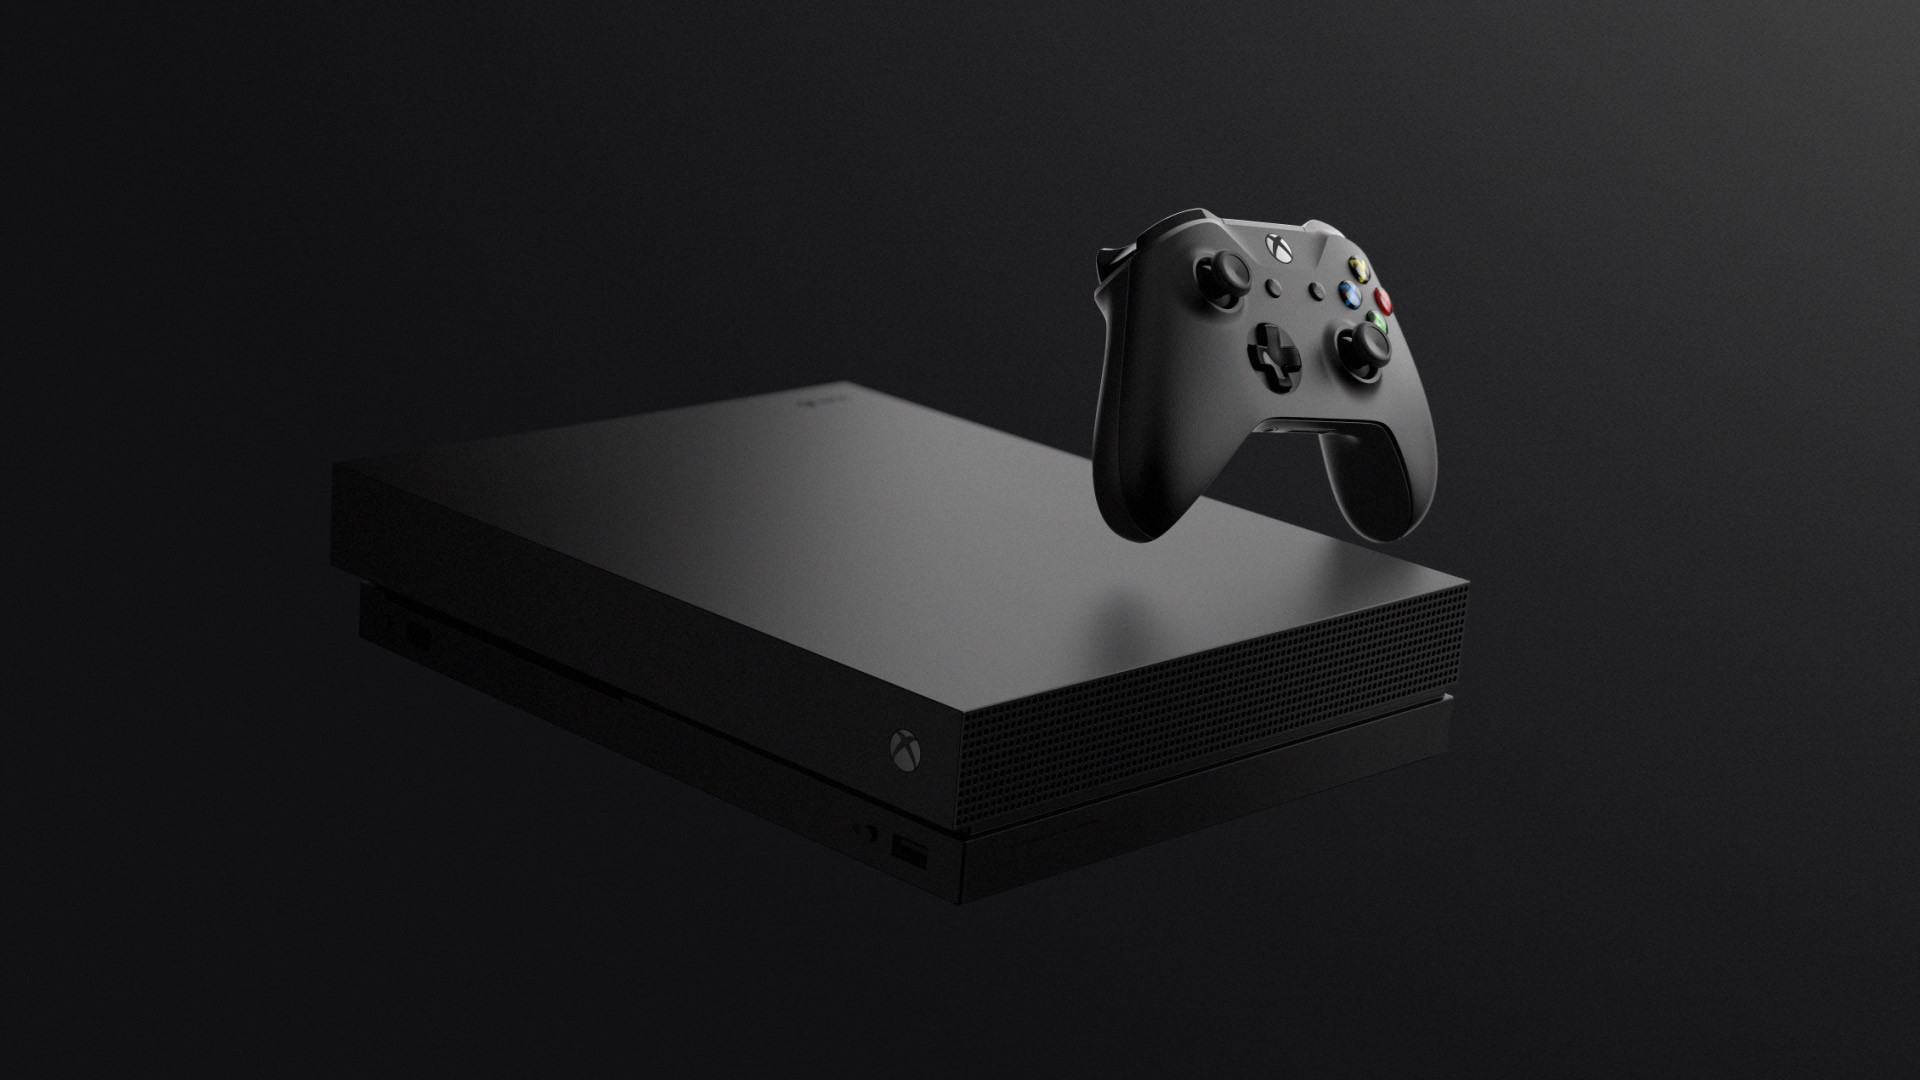 Huge Xbox One Update Finally Out Today, Systems and Customizations Overhauled